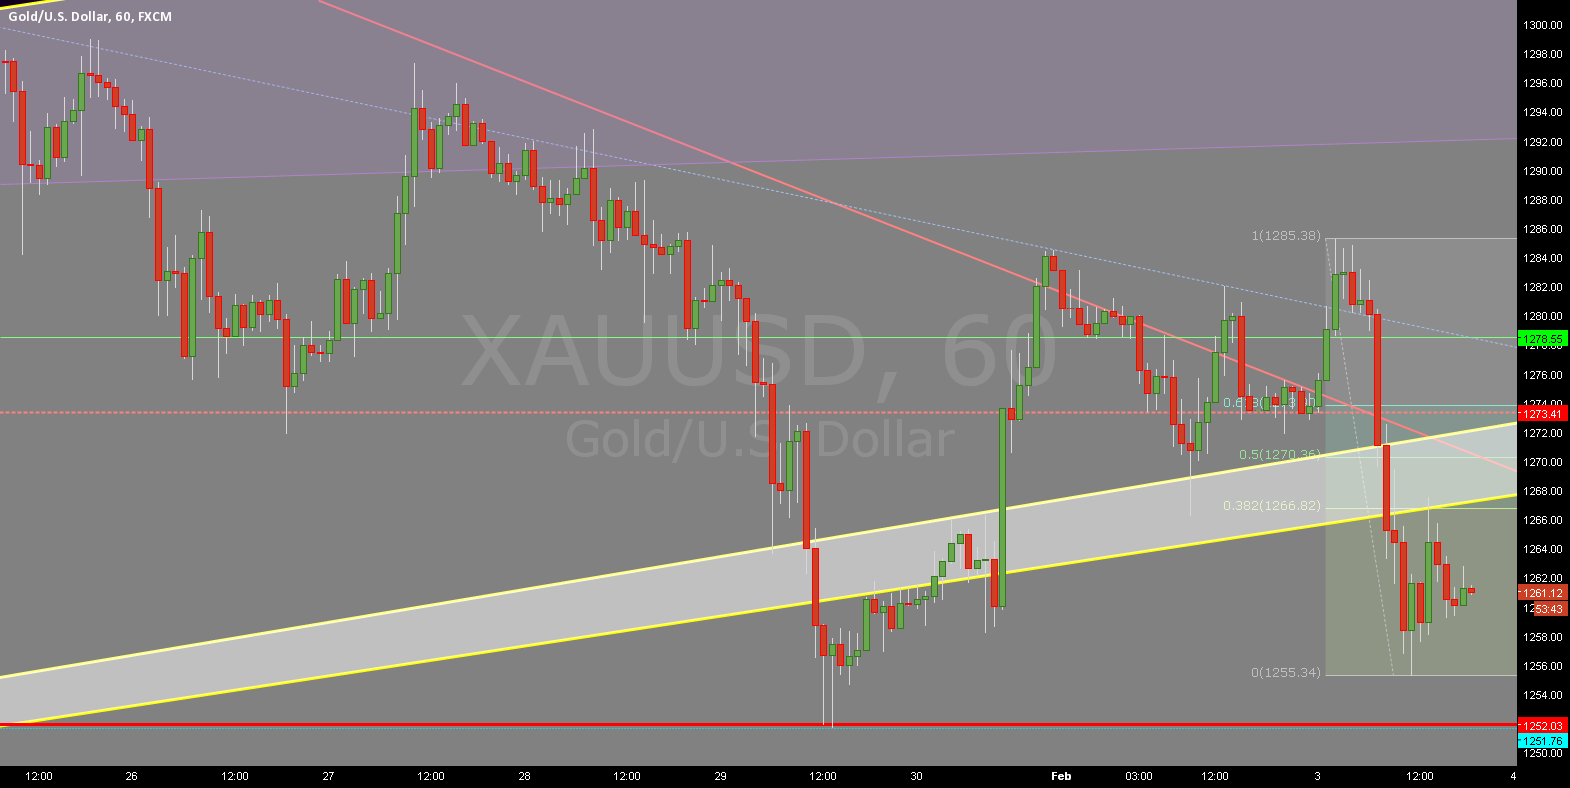 Gold behaves very erratic the last days.